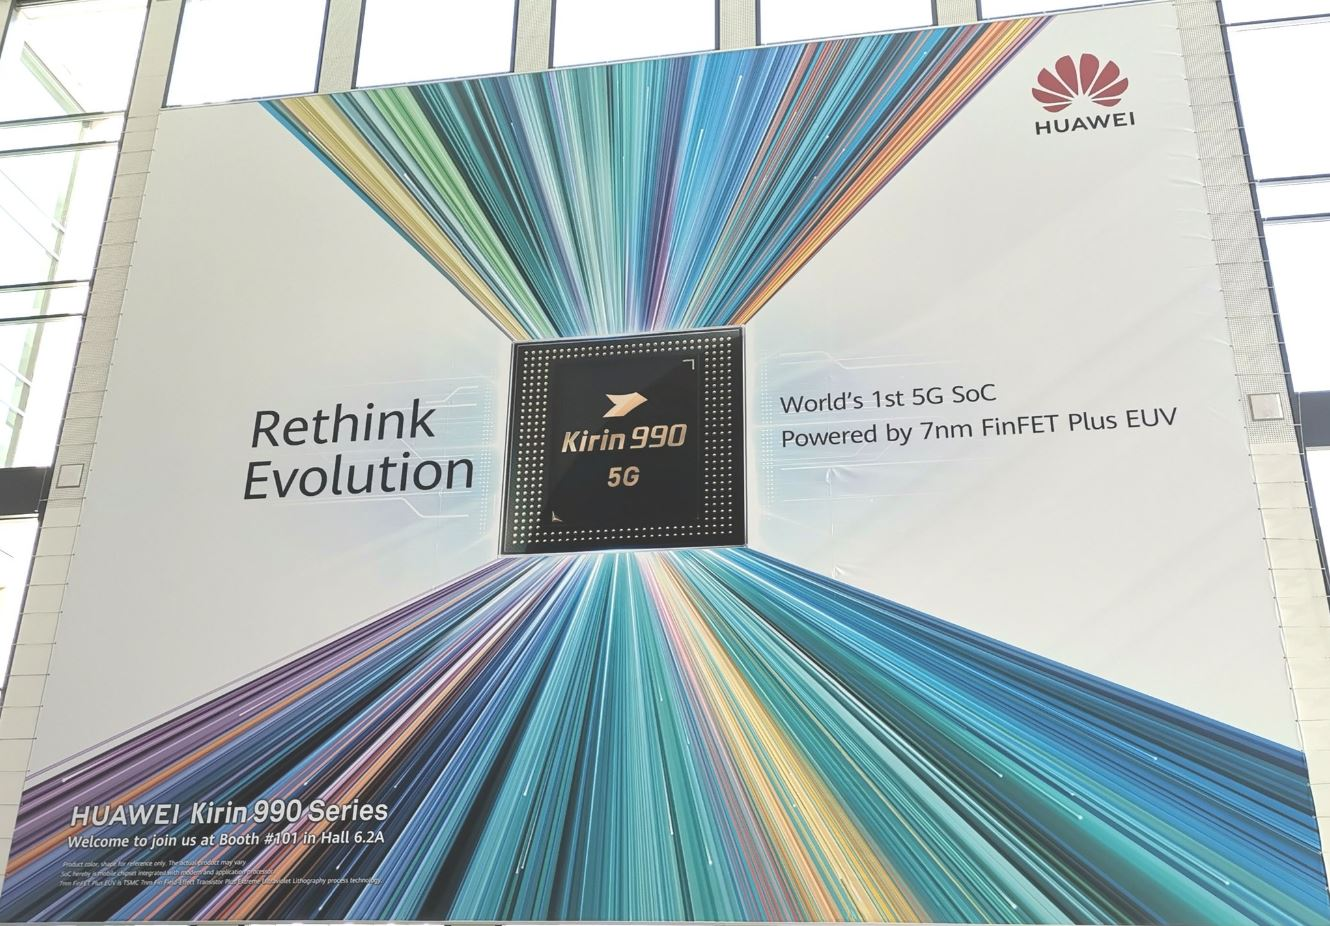 Photo of Huawei Kirin 990 confirmed by IFA 2019 banner